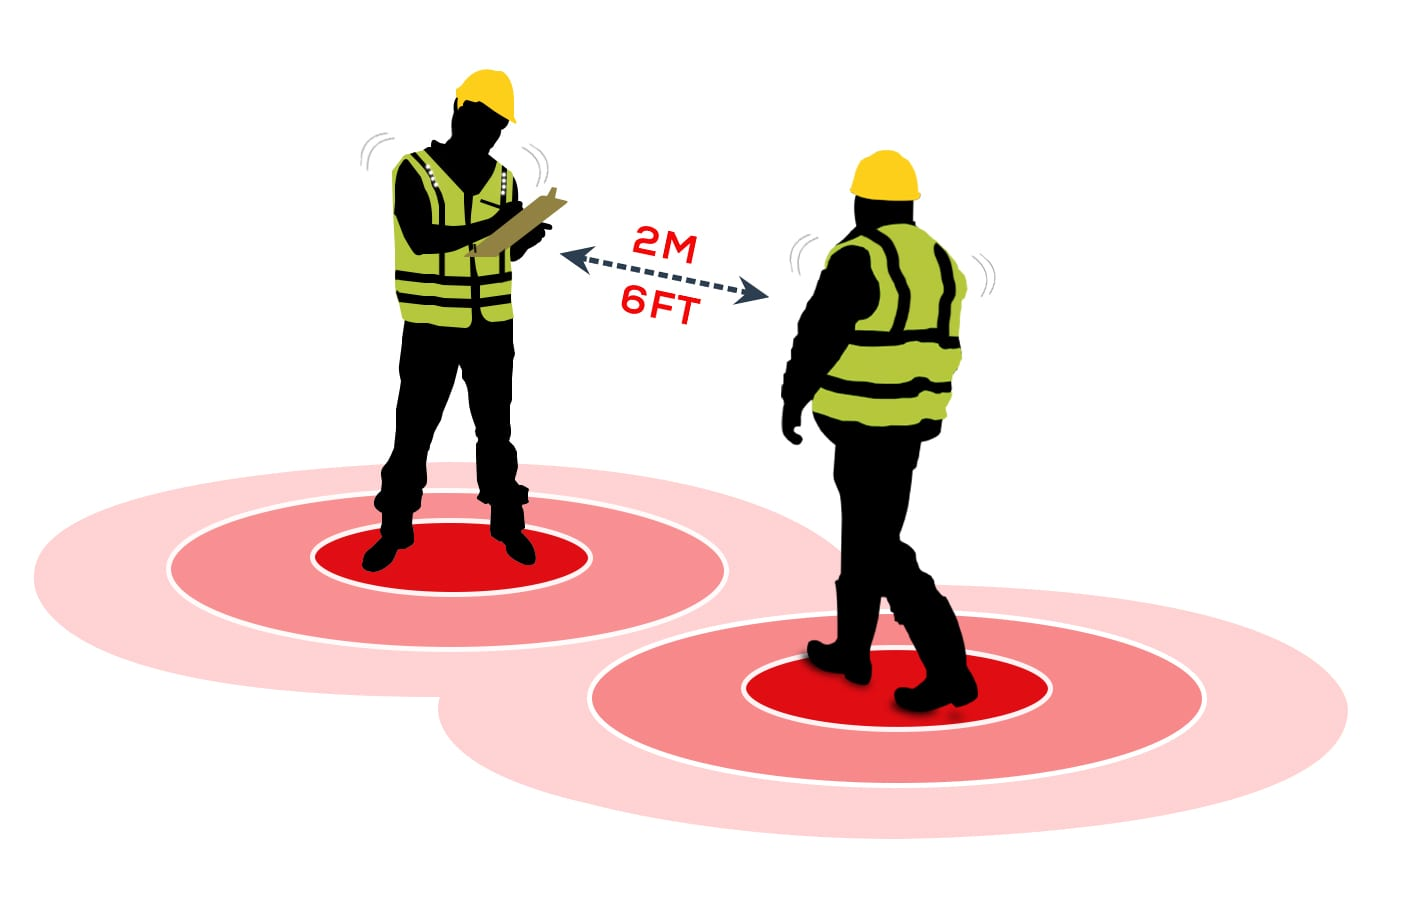 workmen-with-social-distancing-zone